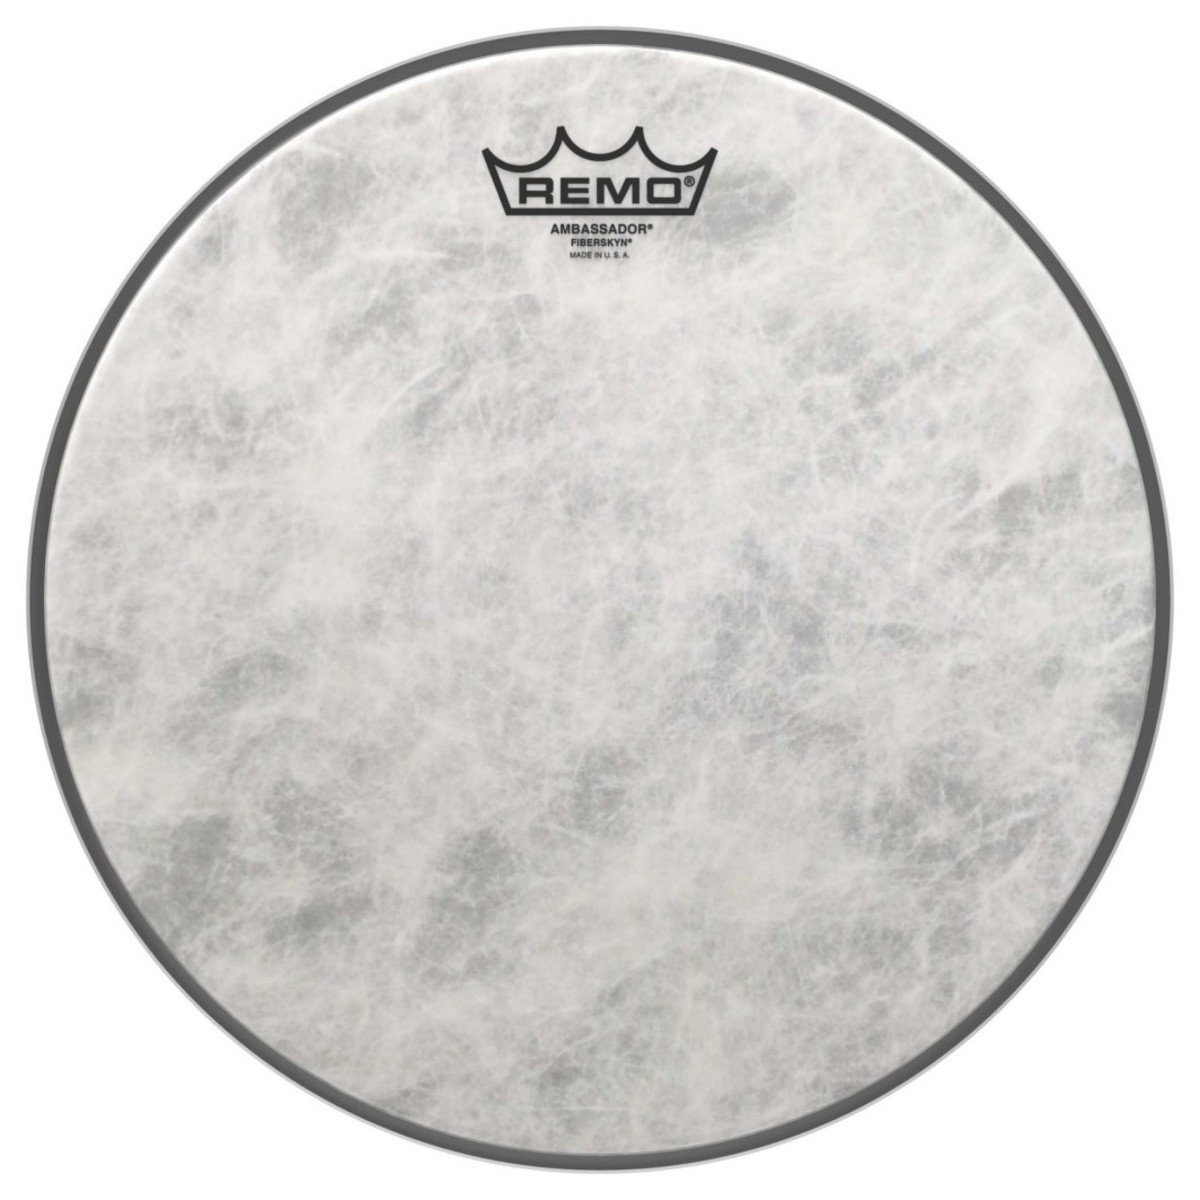 Click to view product details and reviews for Remo Ambassador Fiberskyn 3 14 Drum Head.